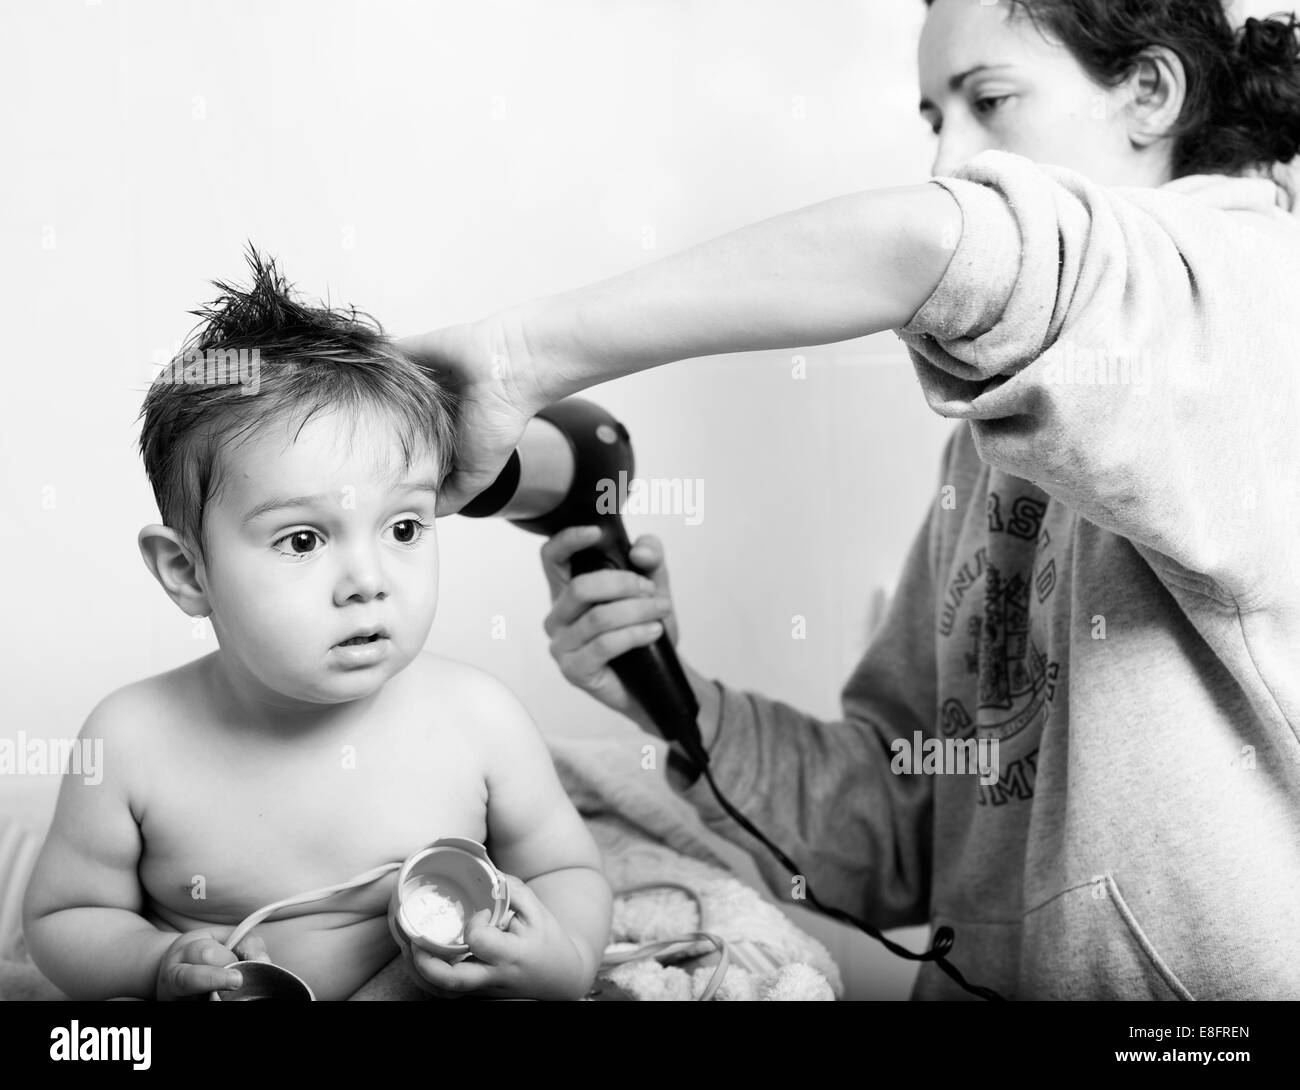 Mother blow drying her son's wet hair - Stock Image